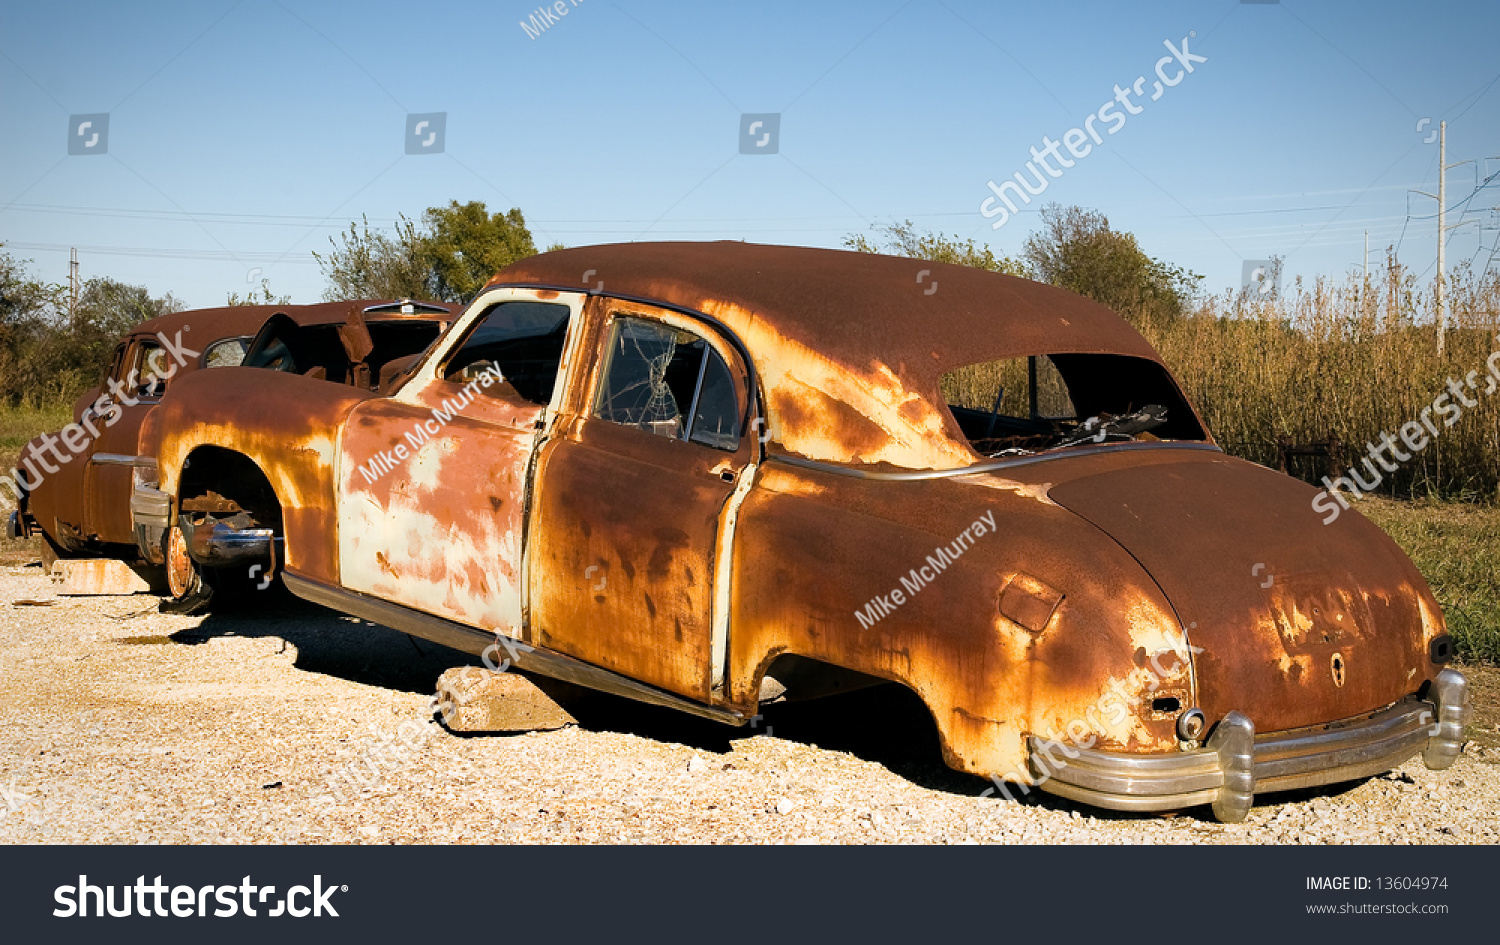 Rusty Old Car On Blocks Stock Photo 13604974 : Shutterstock